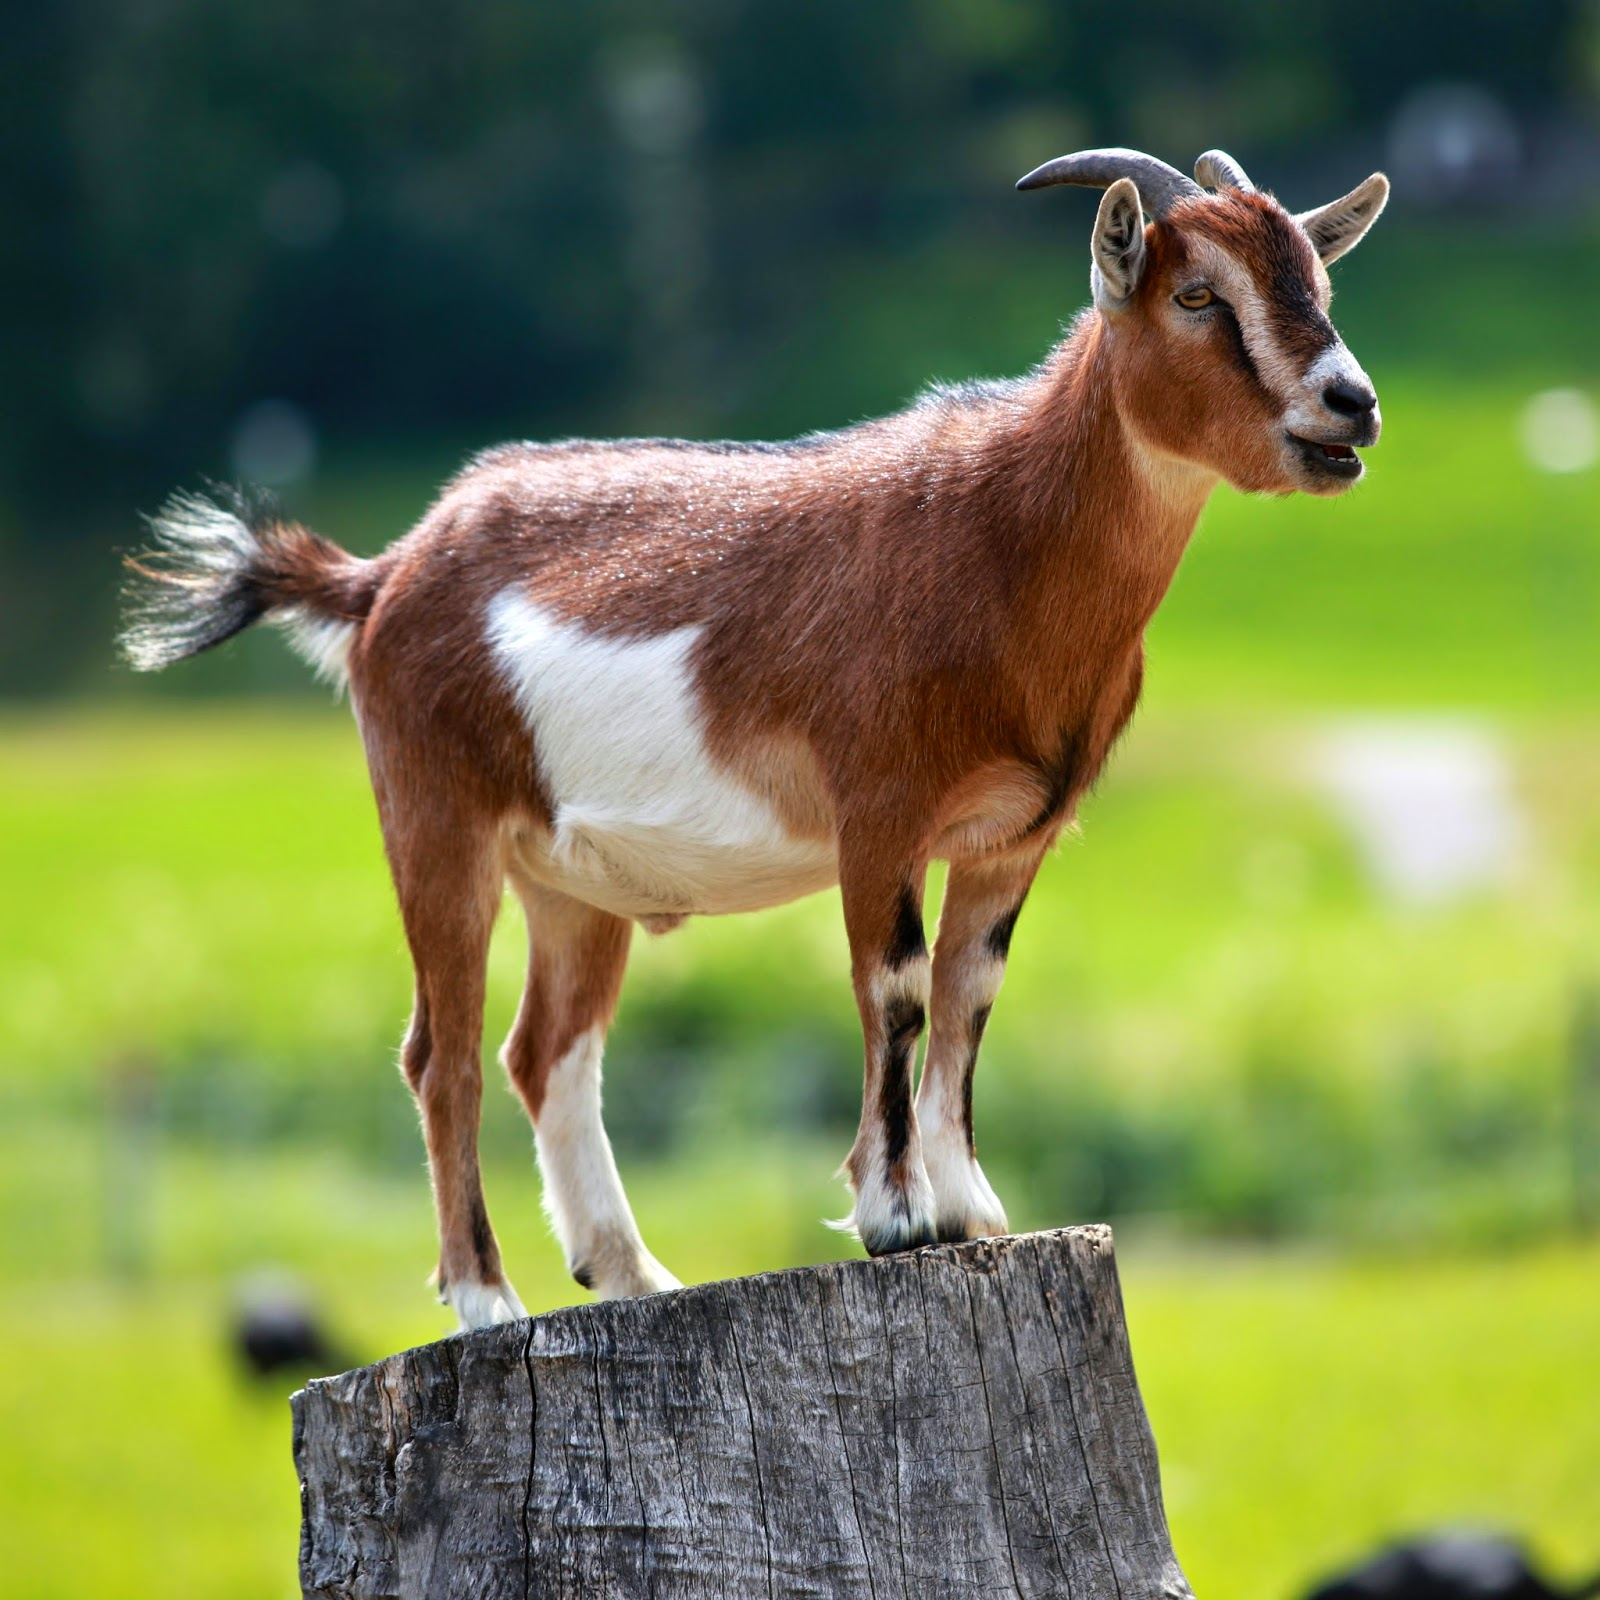 A Pygmy Goat - From Wikipedia, the free encyclopedia